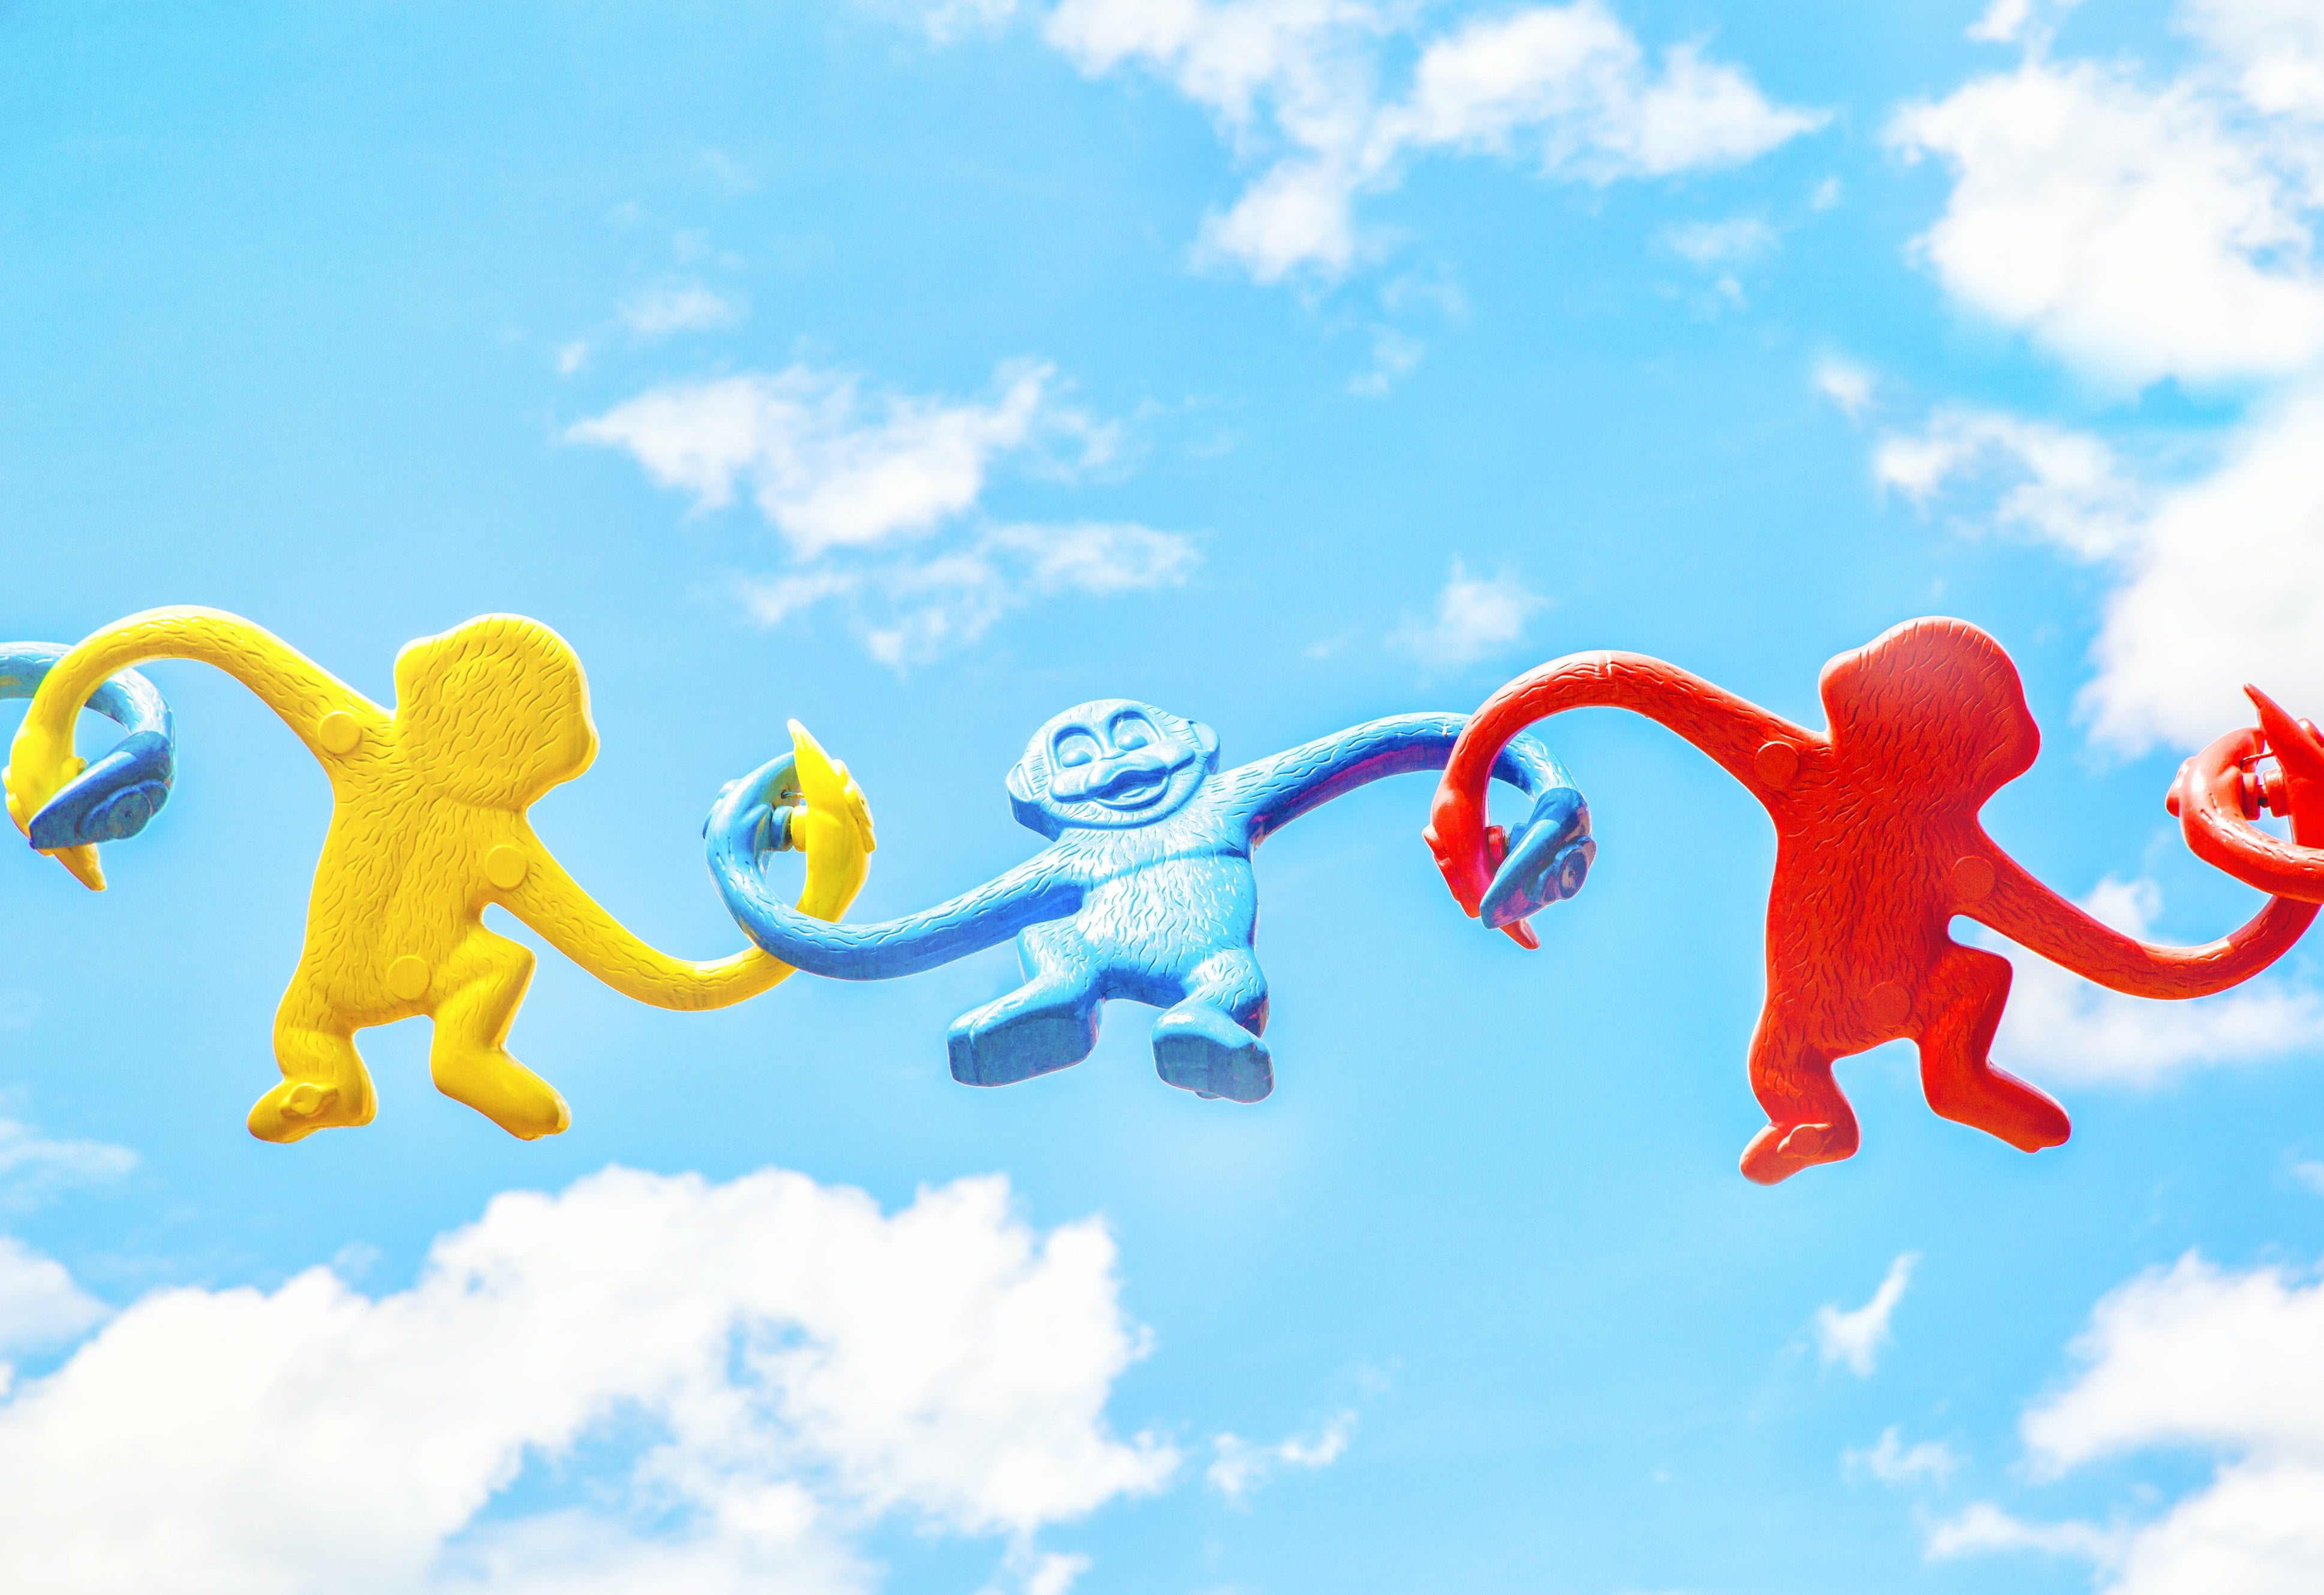 toy monkeys interconnected with blue sky